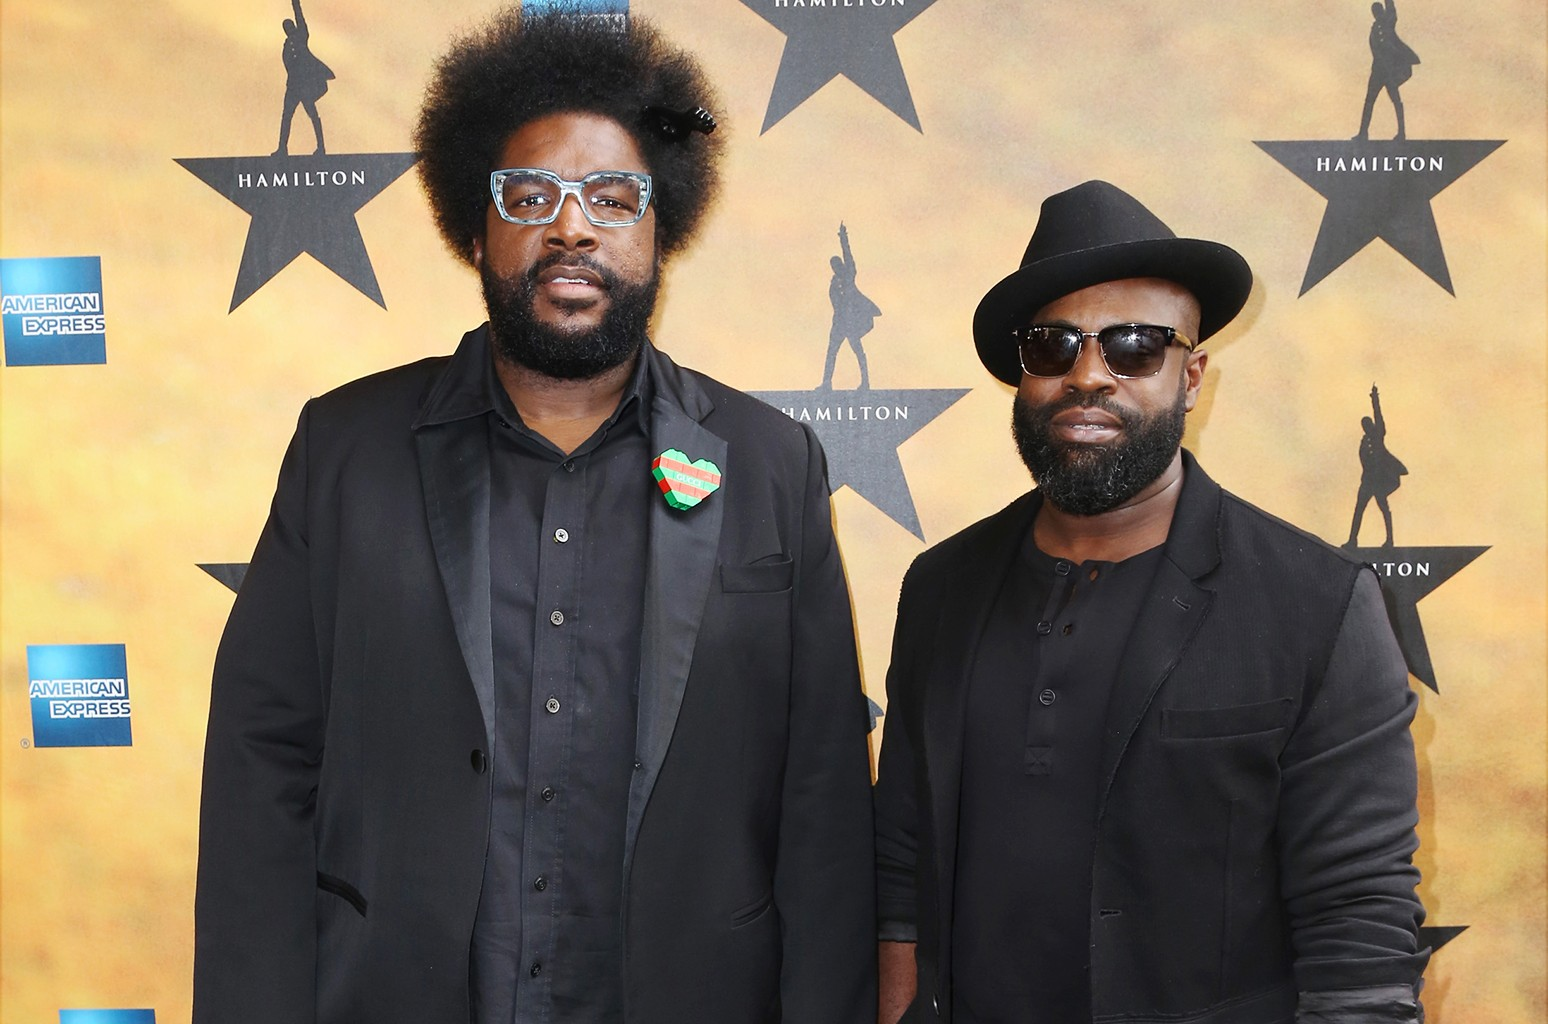 Questlove & Black Thought, 2015